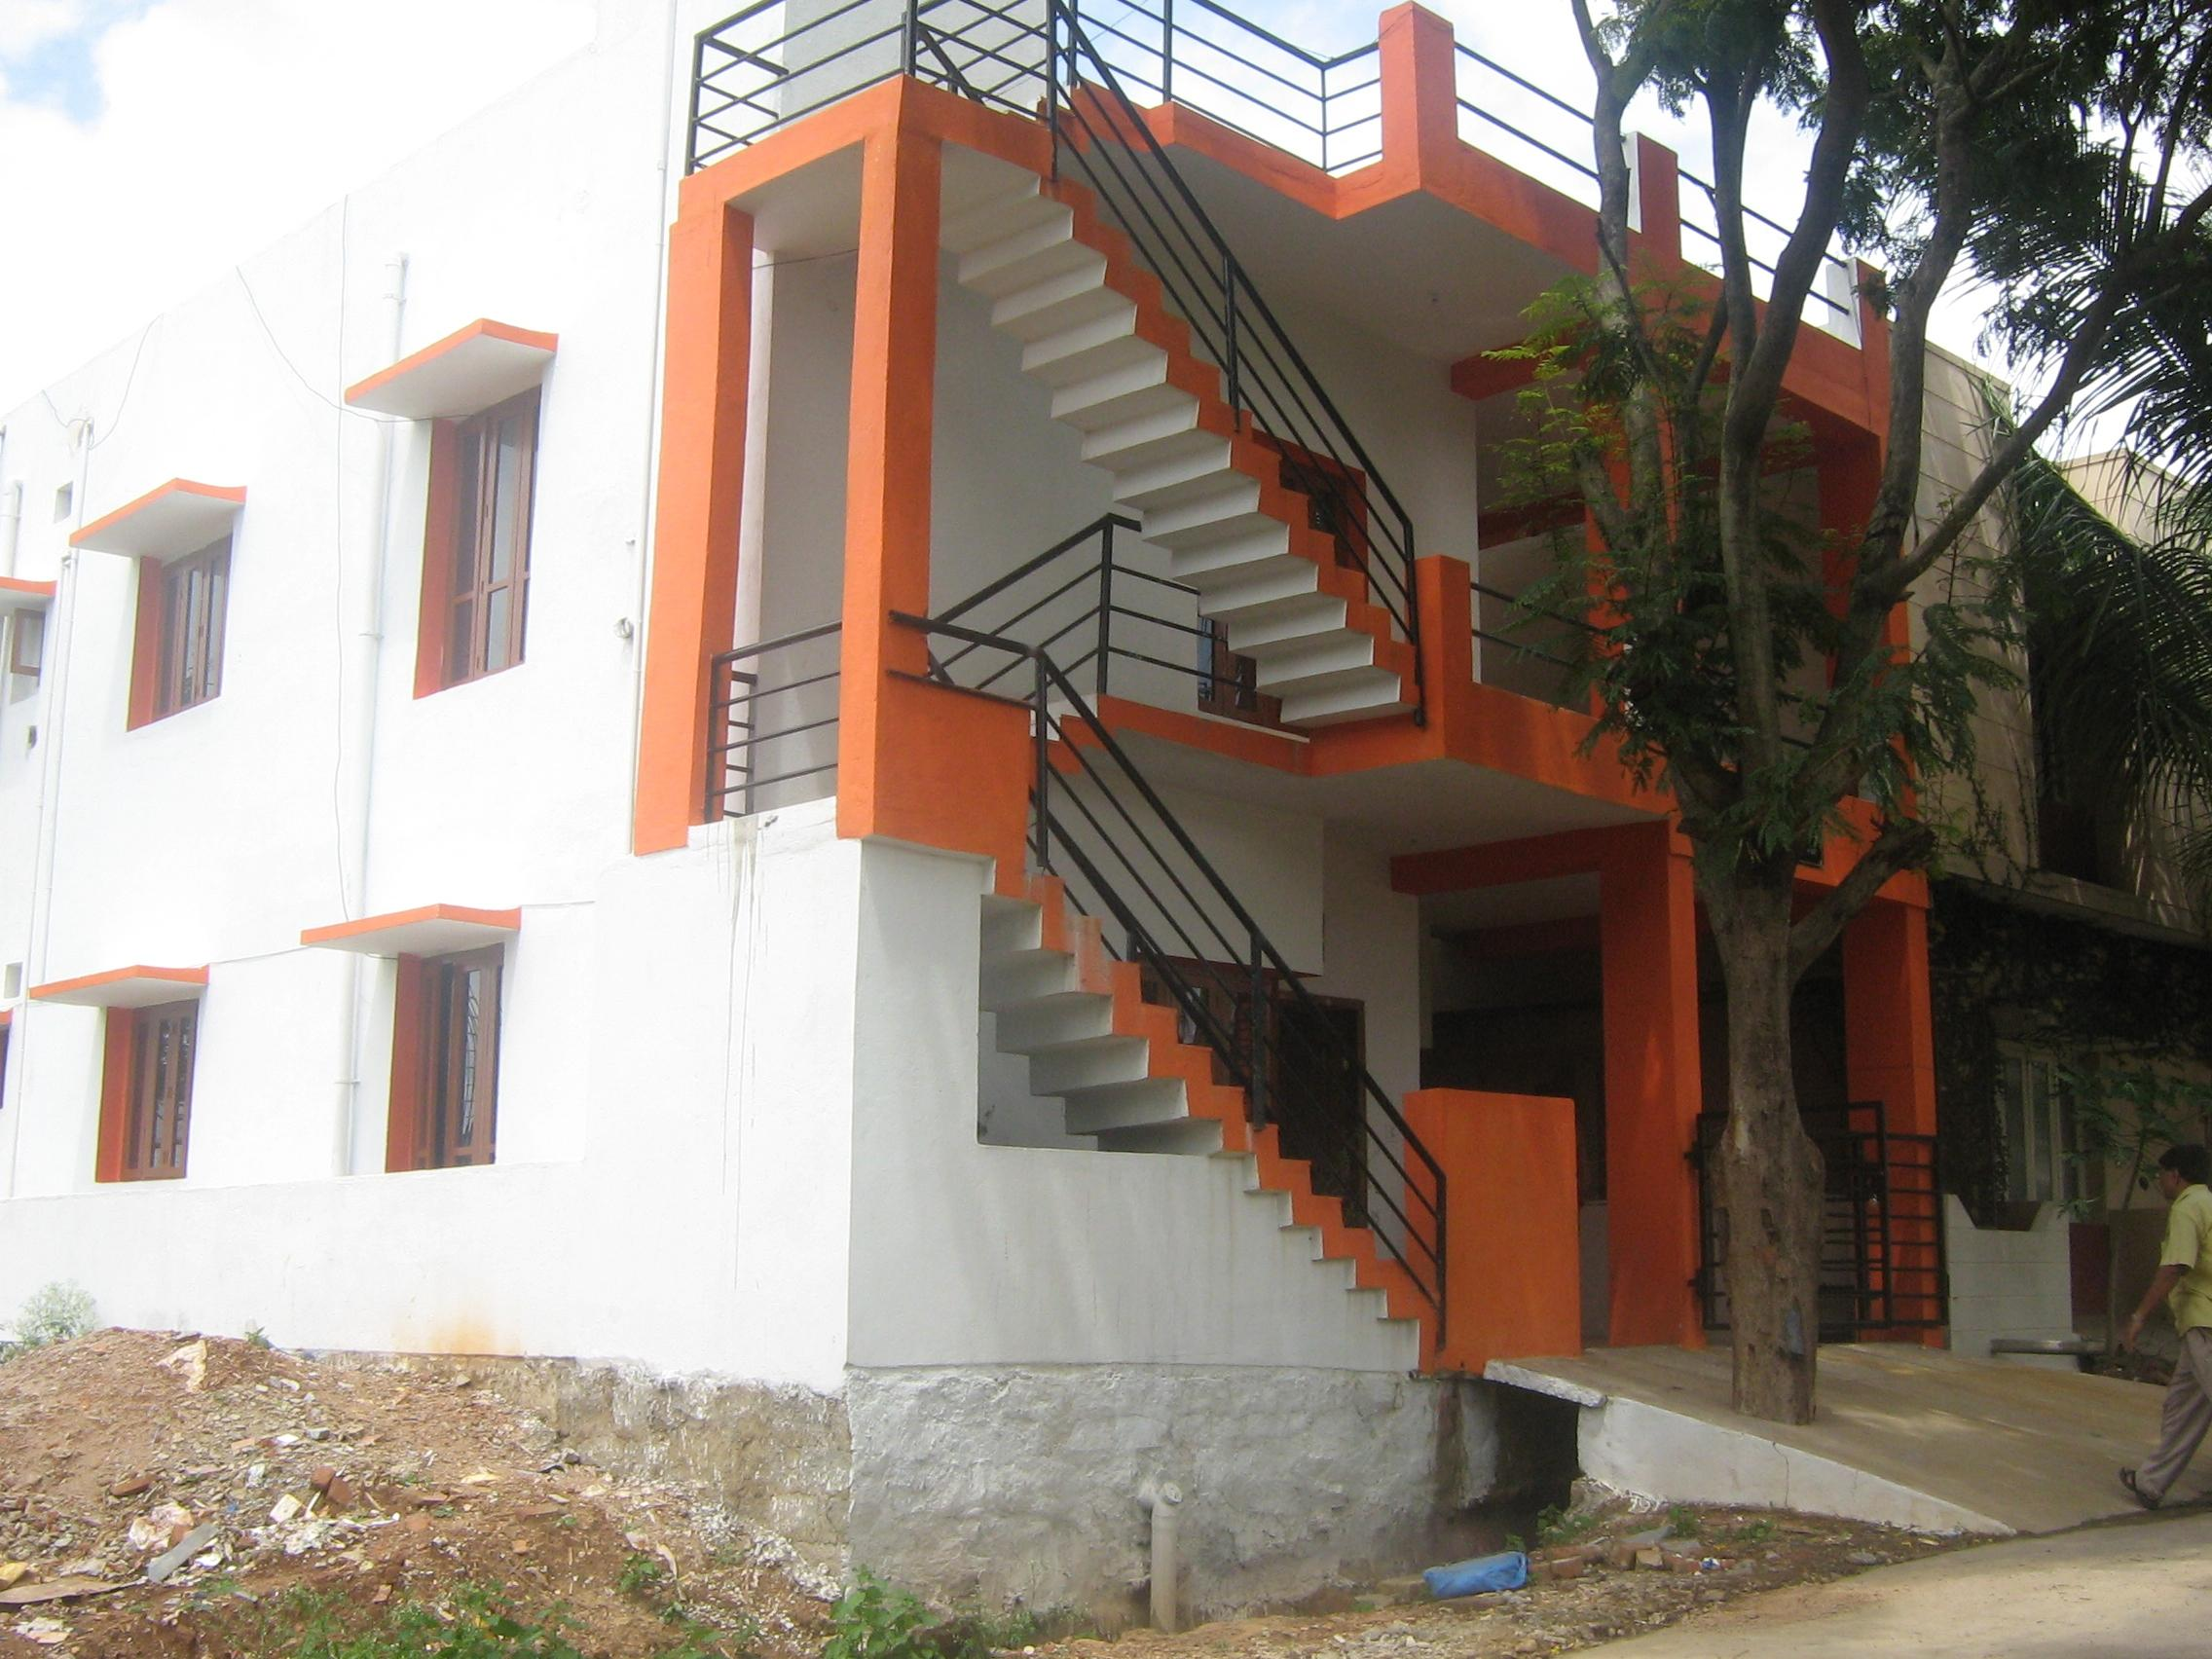 Exterior staircase design india 55 beautiful stair Pictures of exterior home designs in india